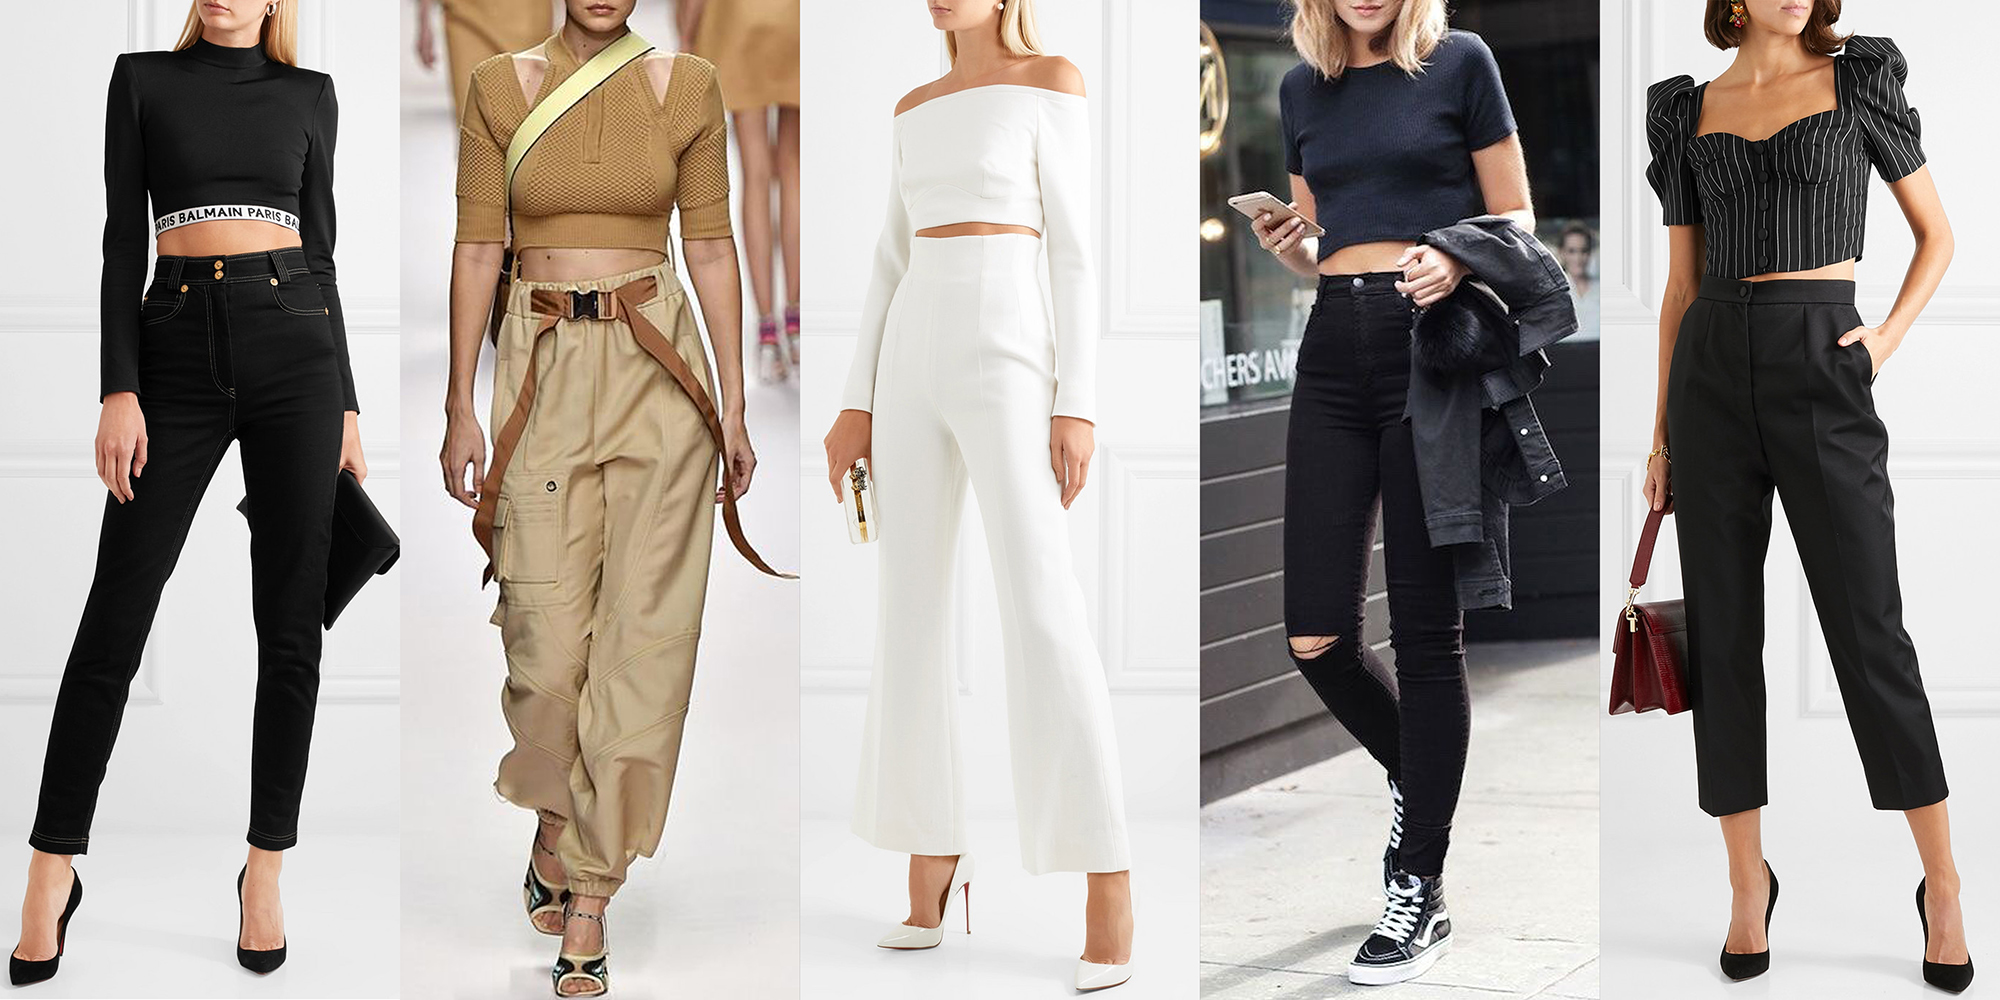 10-ways-to-wear-monochromatic-outfits-6.jpg